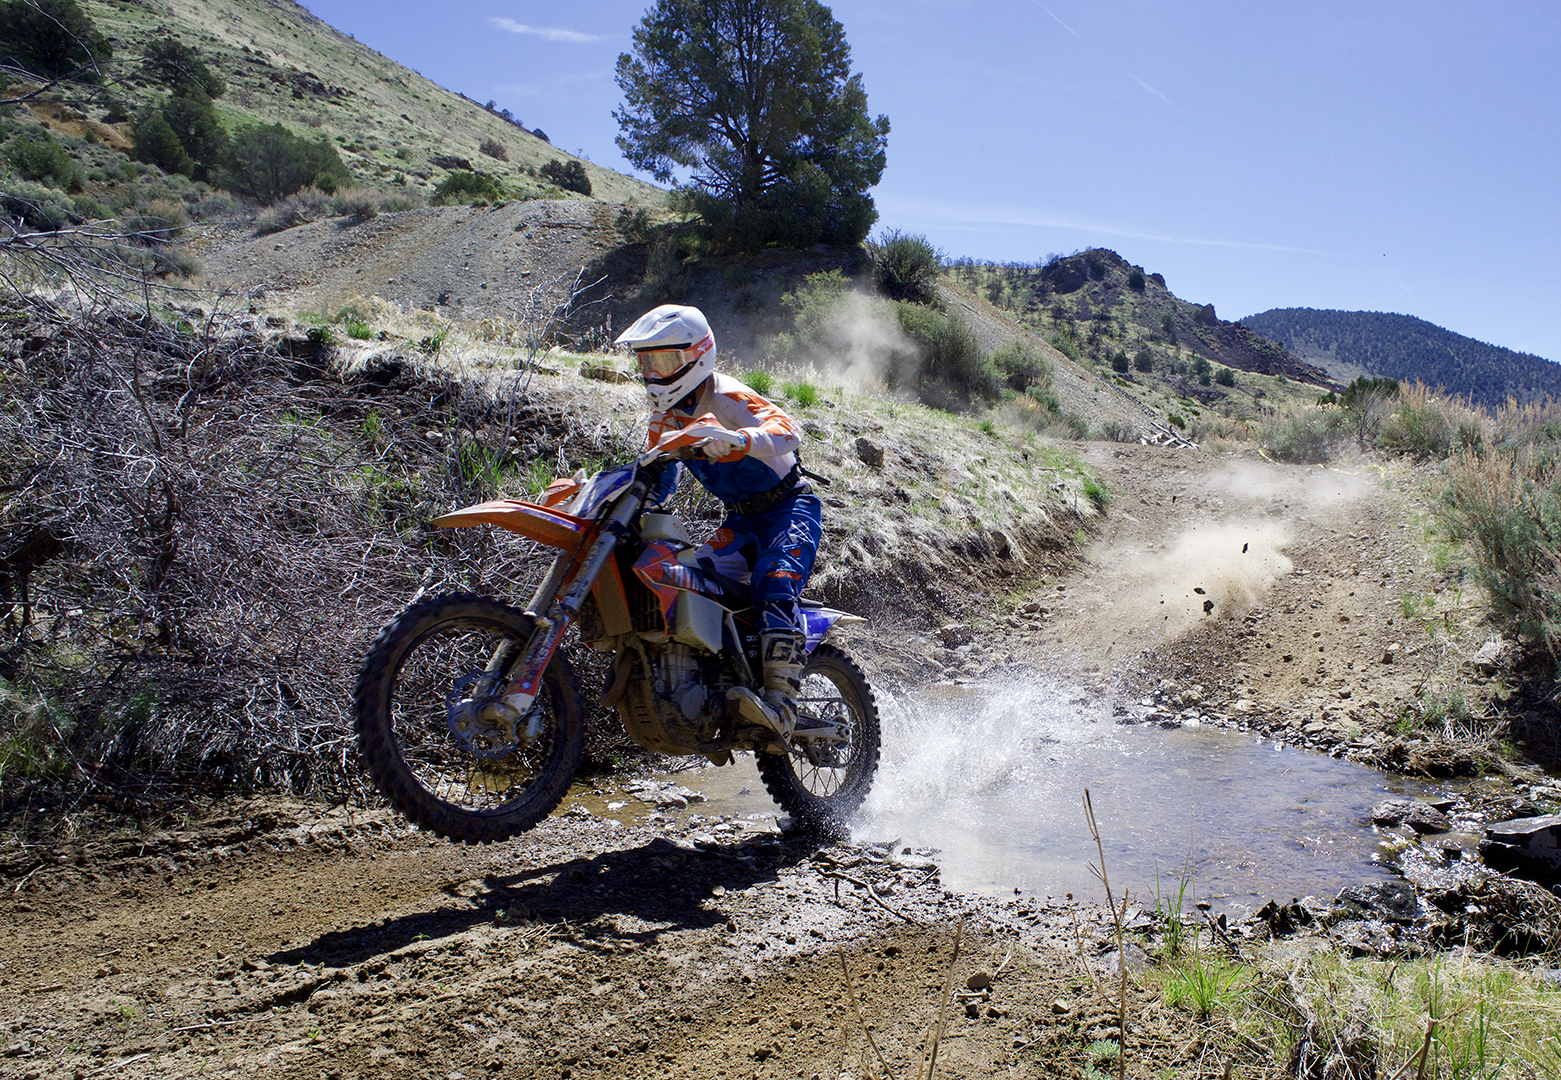 Five-time winner Ross Neely wheelies through the creek in Seven Mile canyon on the first lap headed for the steep climb up to the cemetery.